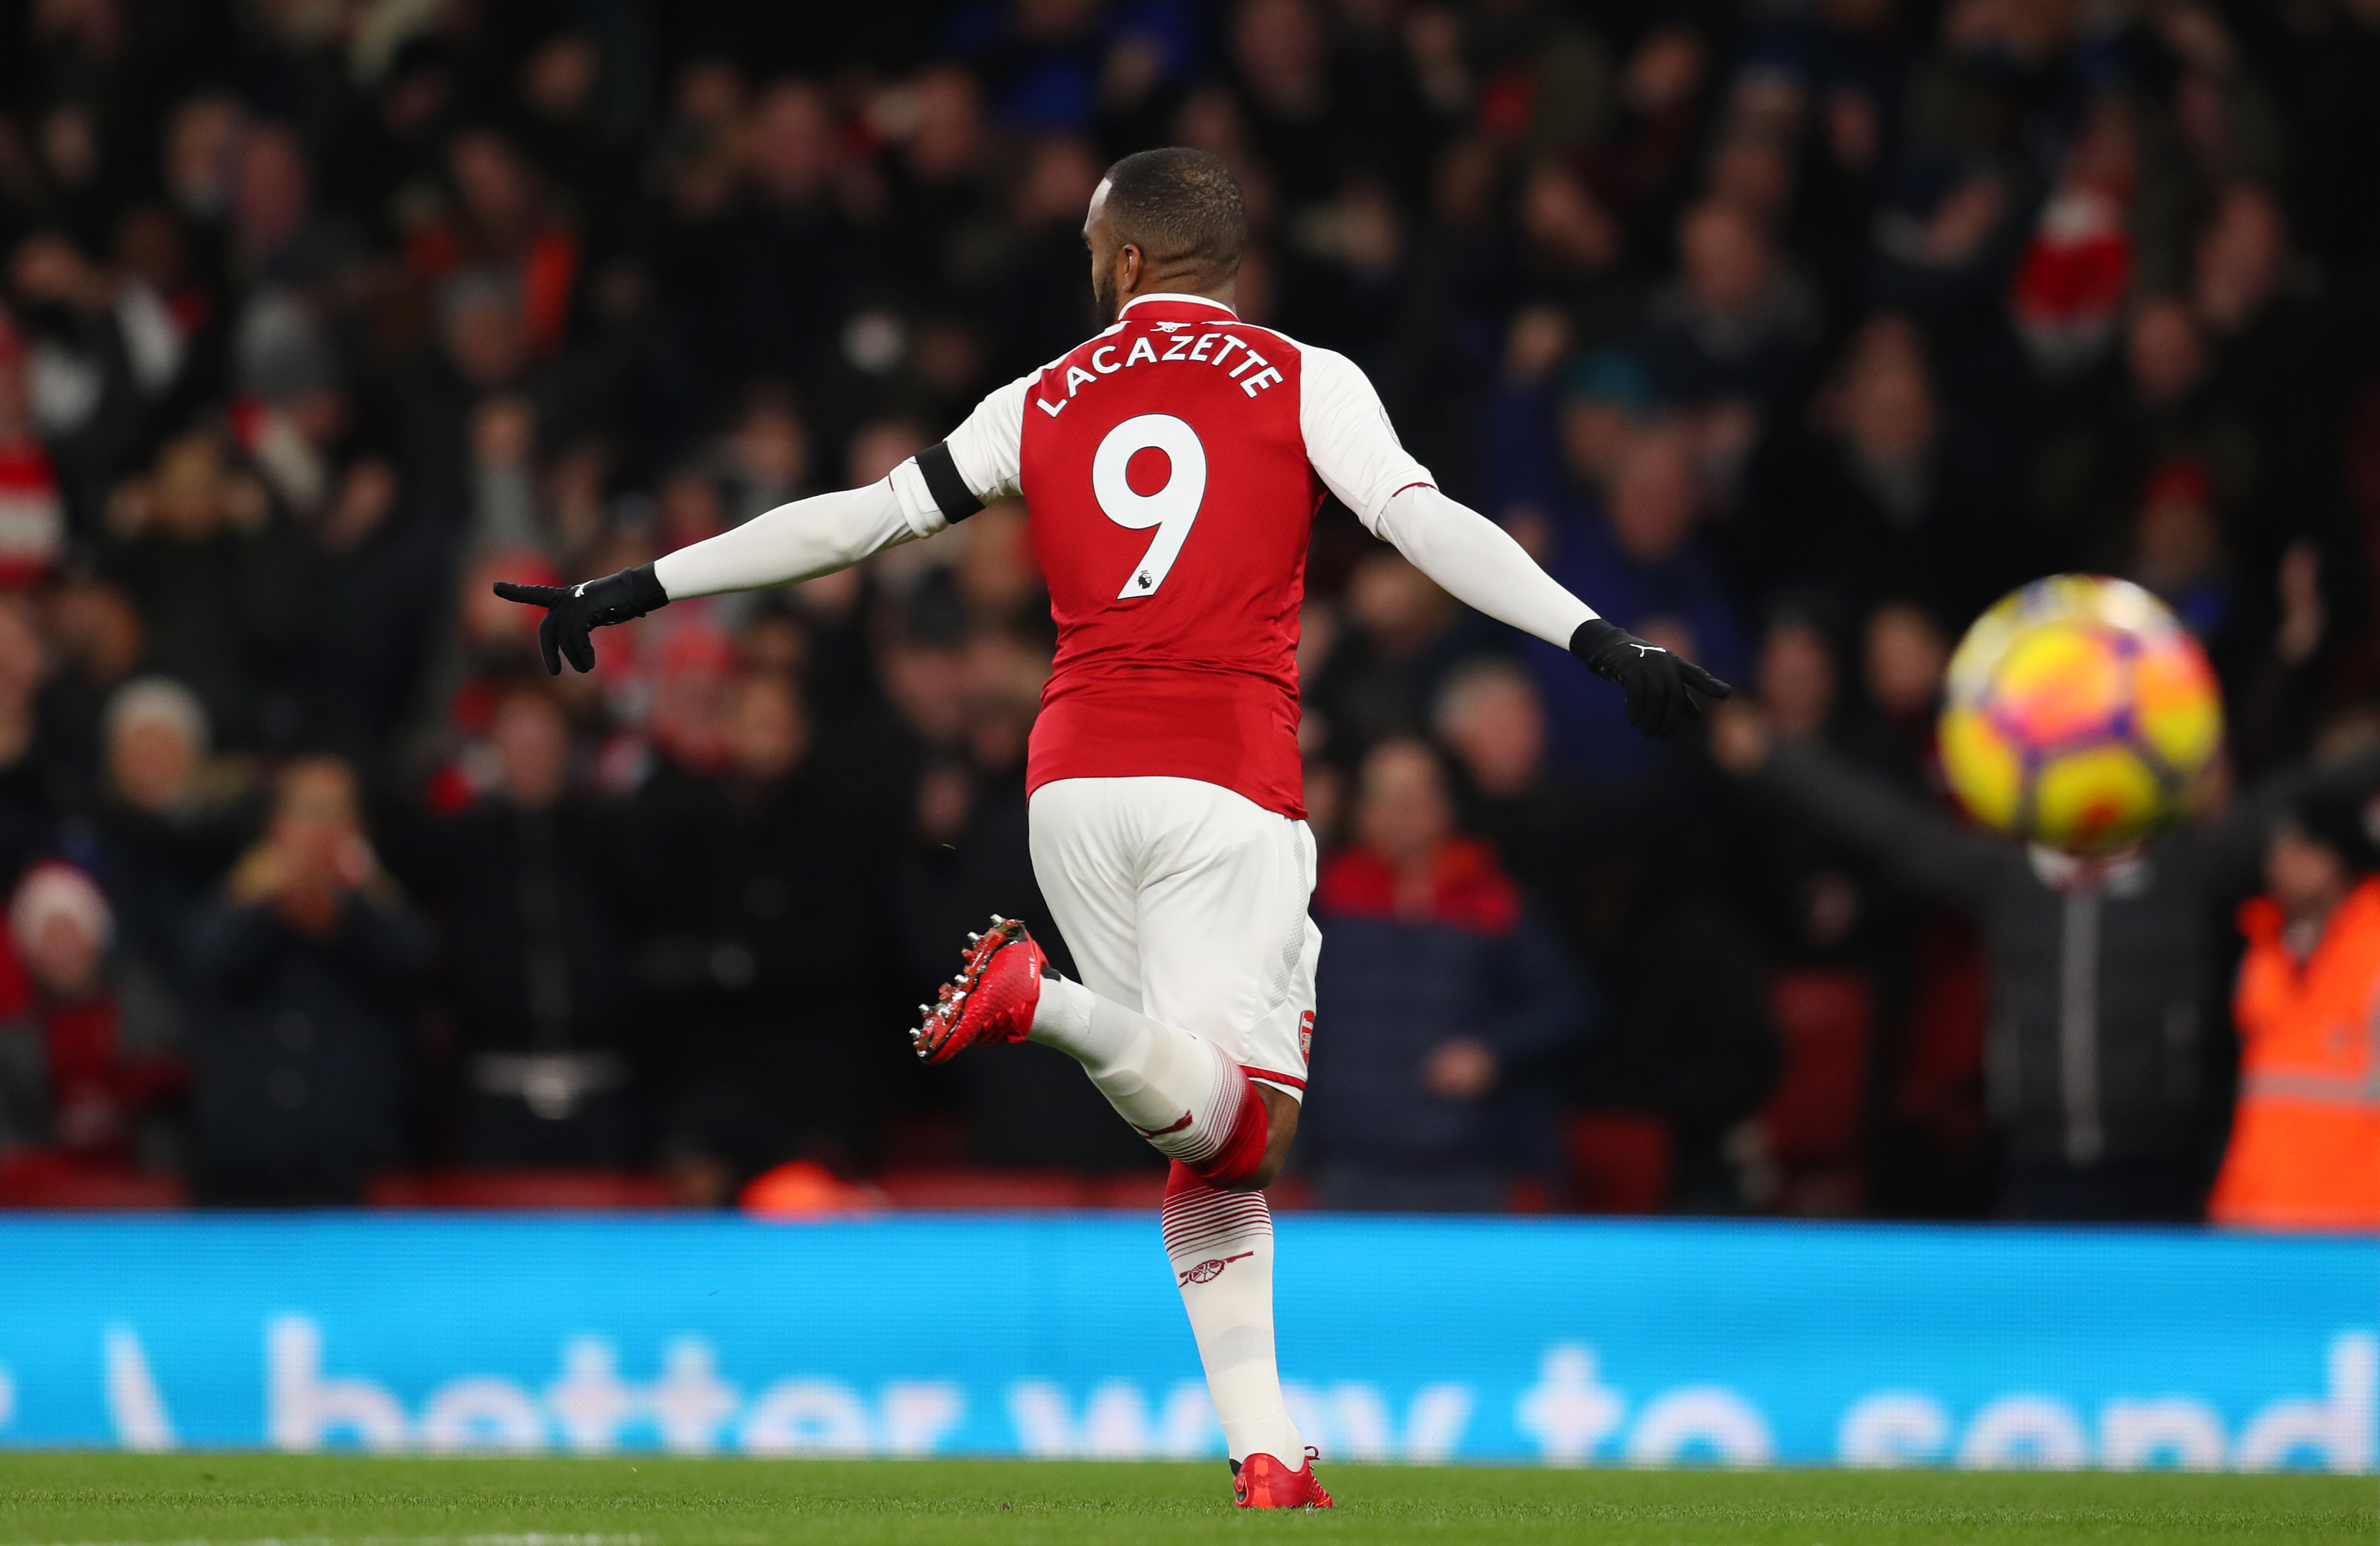 LONDON, ENGLAND - NOVEMBER 29: Alexandre Lacazette of Arsenal celebrates scoring his sides first goal during the Premier League match between Arsenal and Huddersfield Town at Emirates Stadium on November 29, 2017 in London, England. (Photo by Catherine Ivill/Getty Images)